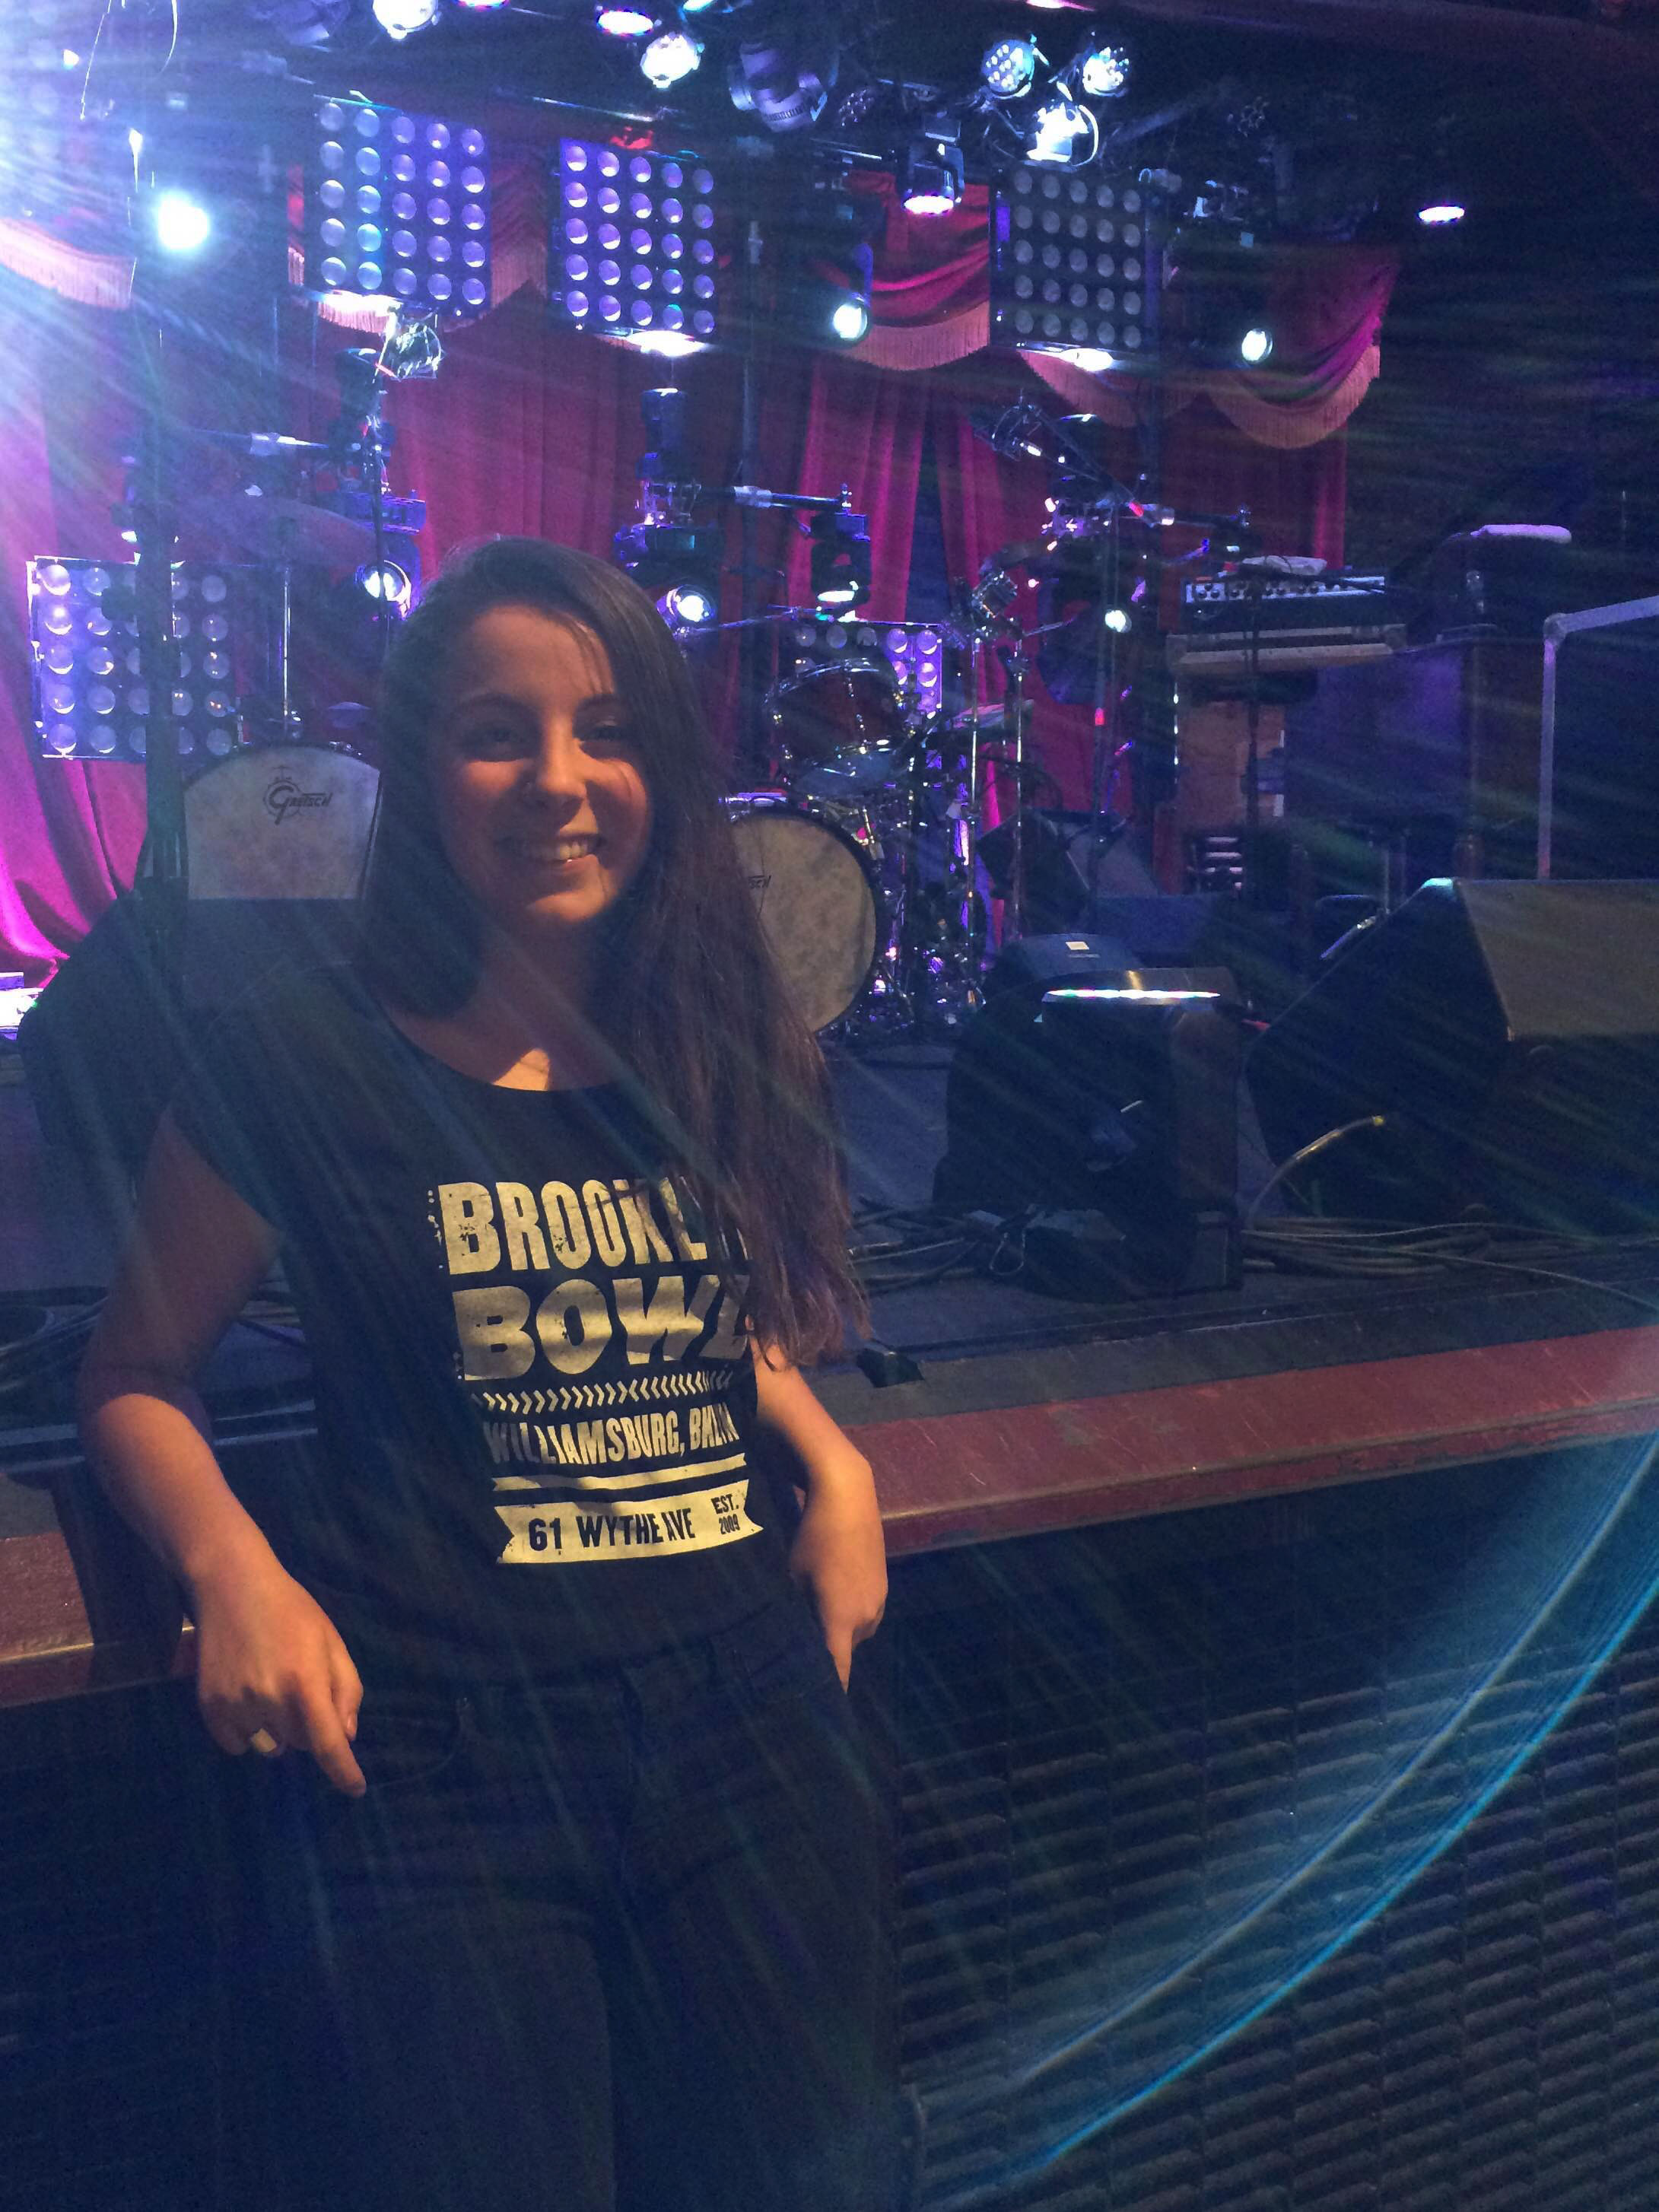 Adelaide Fuller '17 during her internship at the Brooklyn Bowl music venue.